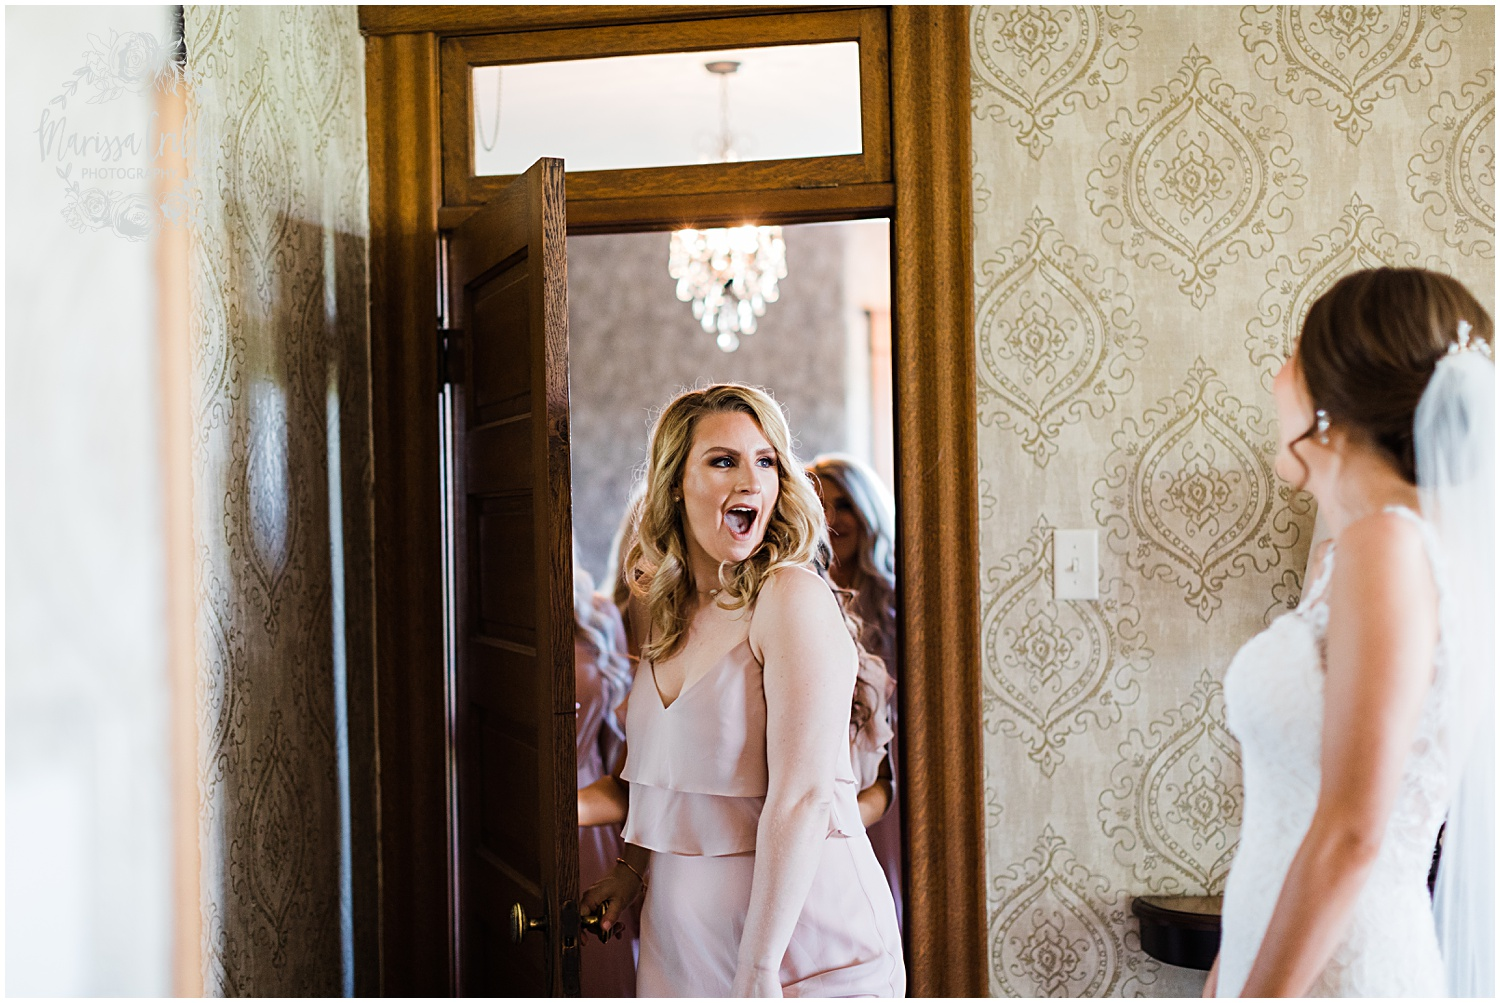 JESSICA & MARK MARRIED SNEAK PEEKS | 1890 EVENT SPACE WEDDING | MARISSA CRIBBS PHOTOGRAPHY_7796.jpg